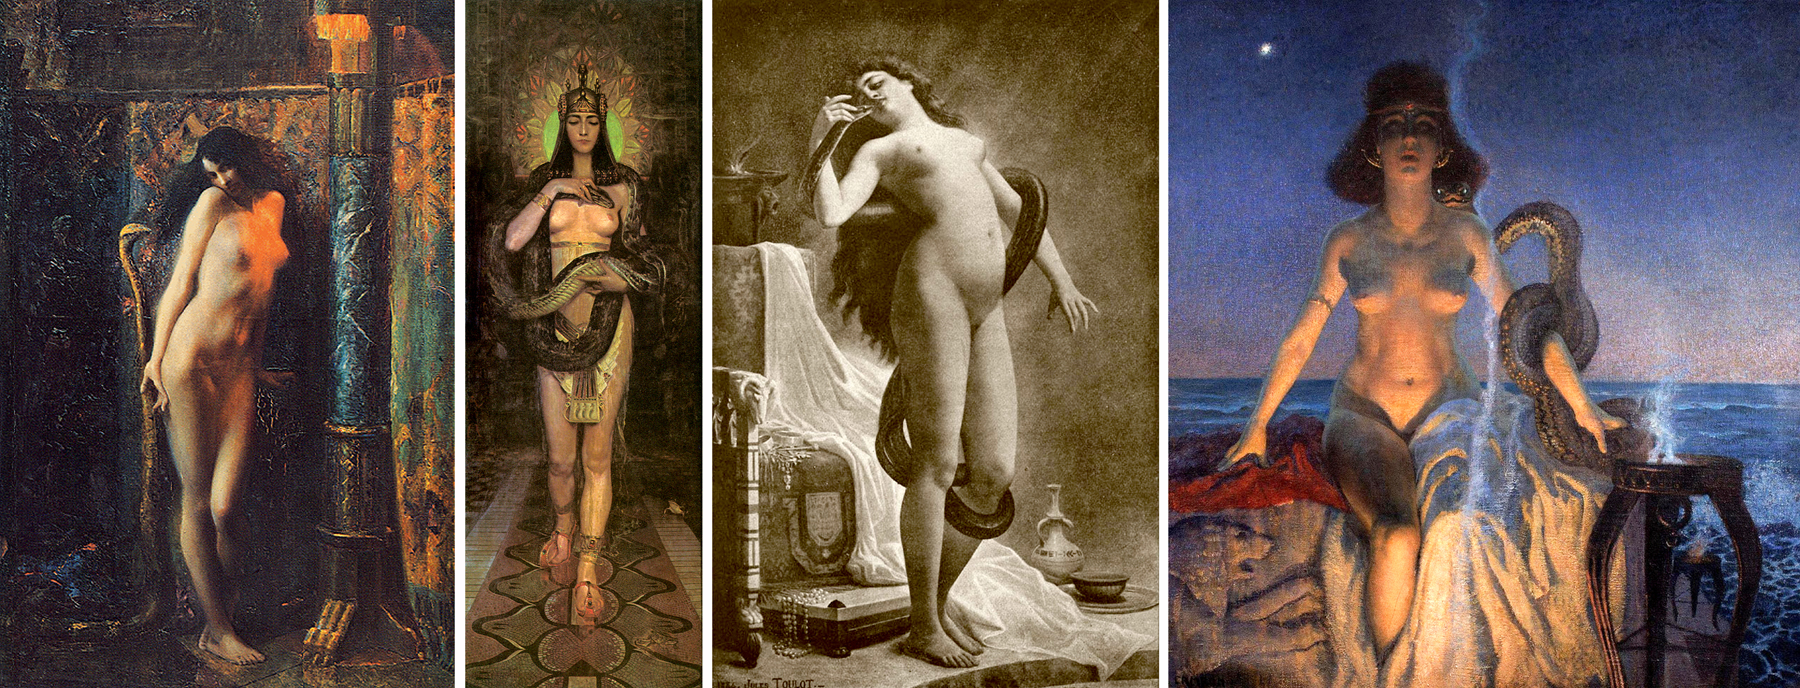 Salammbo and the holy python by a) Gaston Bussière (1910) b) Charles Allen Winter c) Jules Jean Baptiste Toulot d) Glauco Cambon (1916)